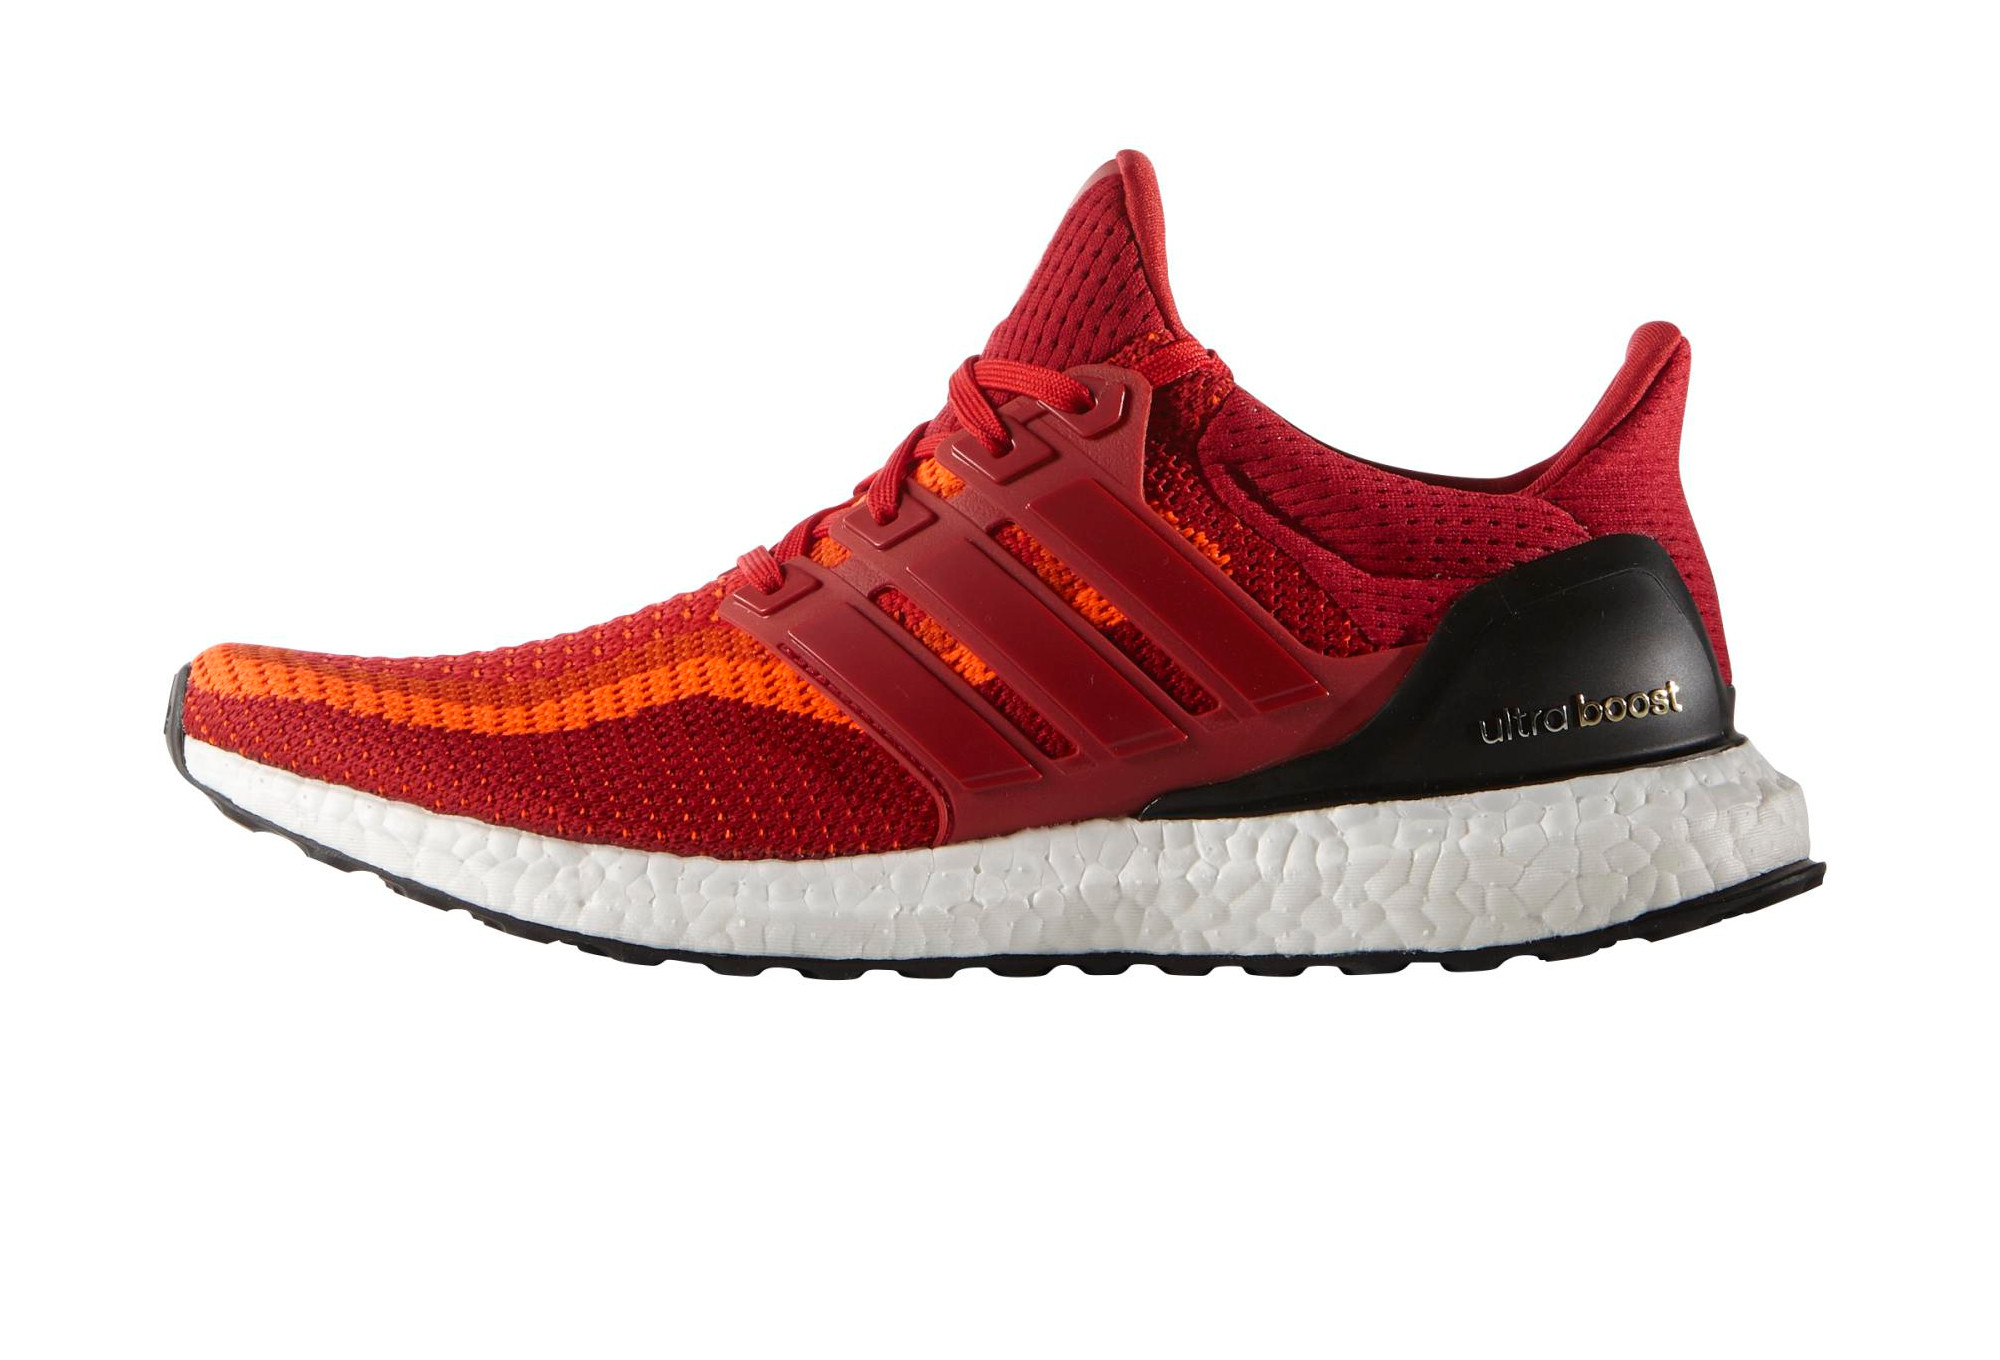 adidas chaussures homme ultra boost rouge blanc alltricks. Black Bedroom Furniture Sets. Home Design Ideas